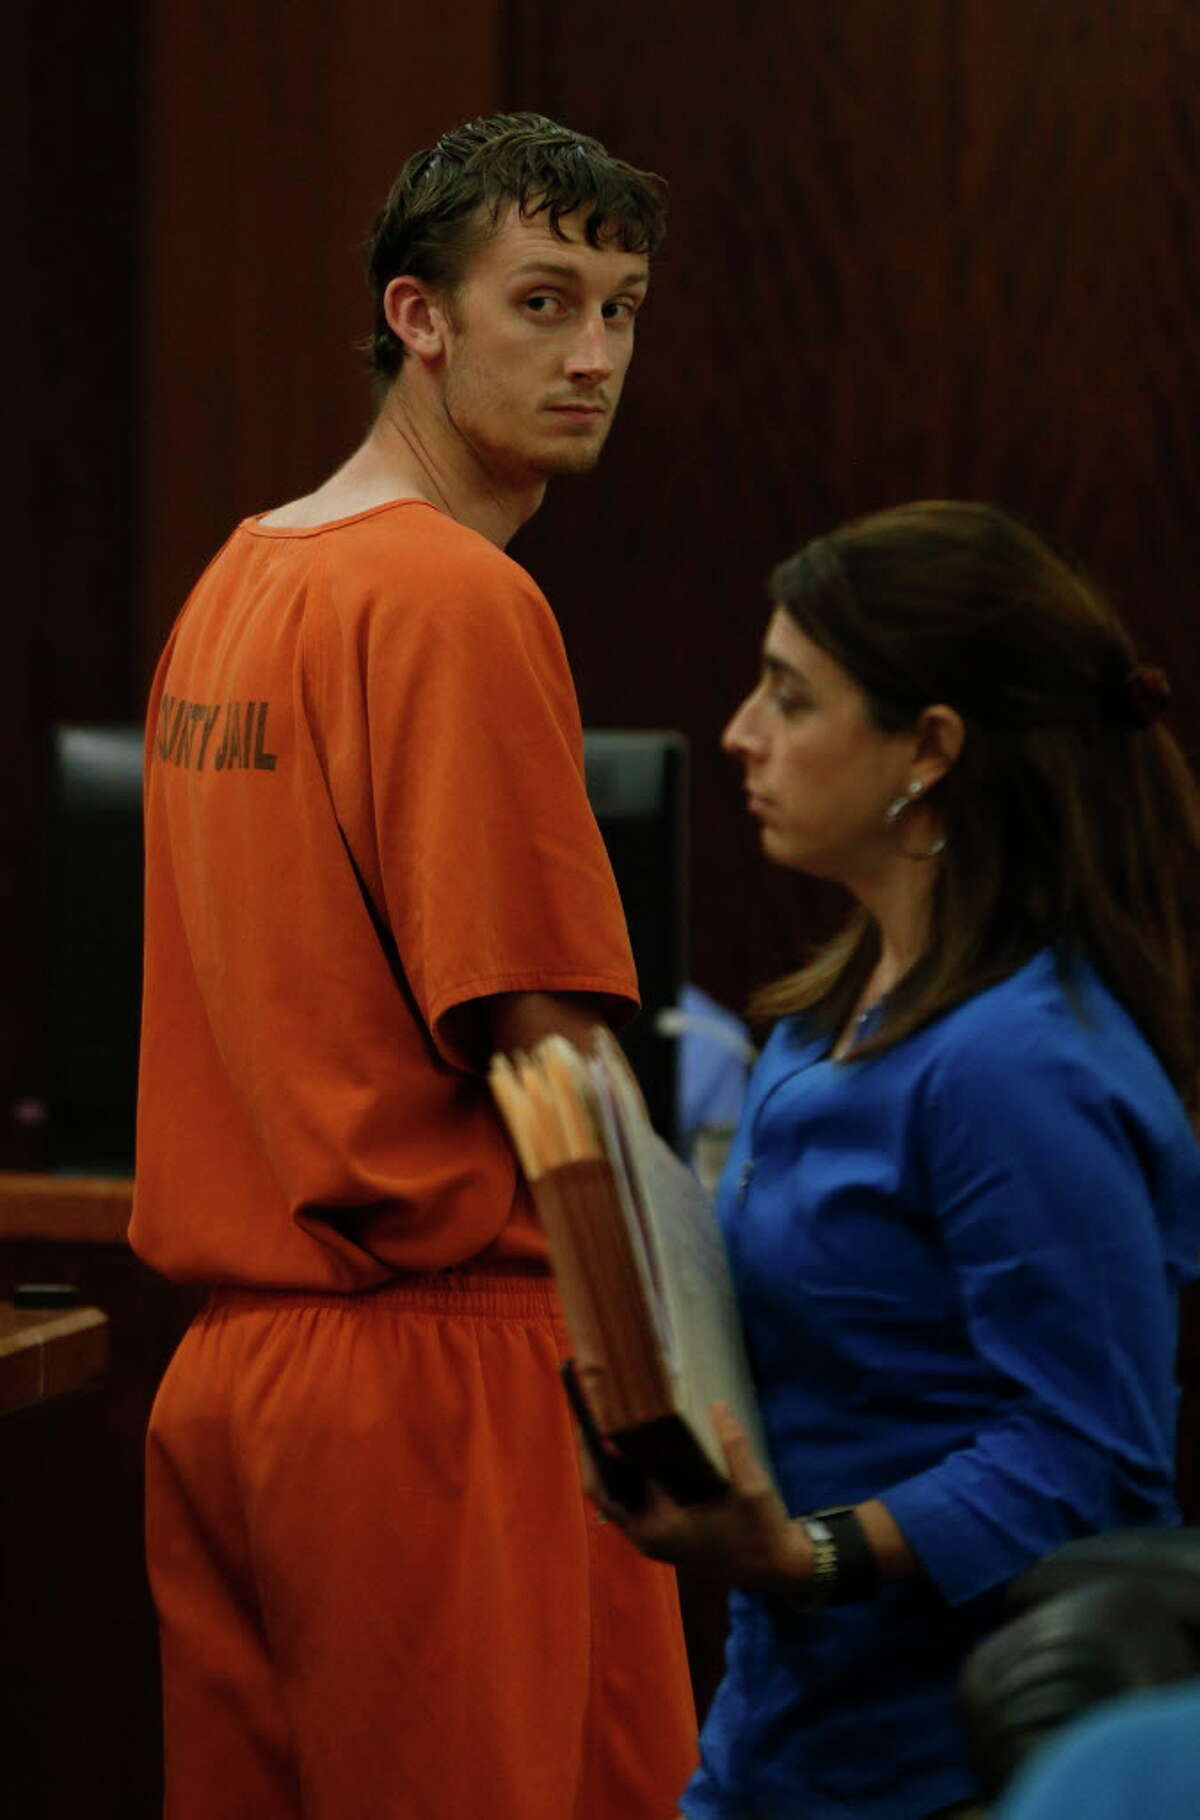 Marshall Patrick Schoen, the UH student accused of causing a drunken driving wreck that killed another UH student last week, appeared before Judge Mary Lou Keel in the 232nd District Court, Wednesday, April 20, 2016, in Brookshire.